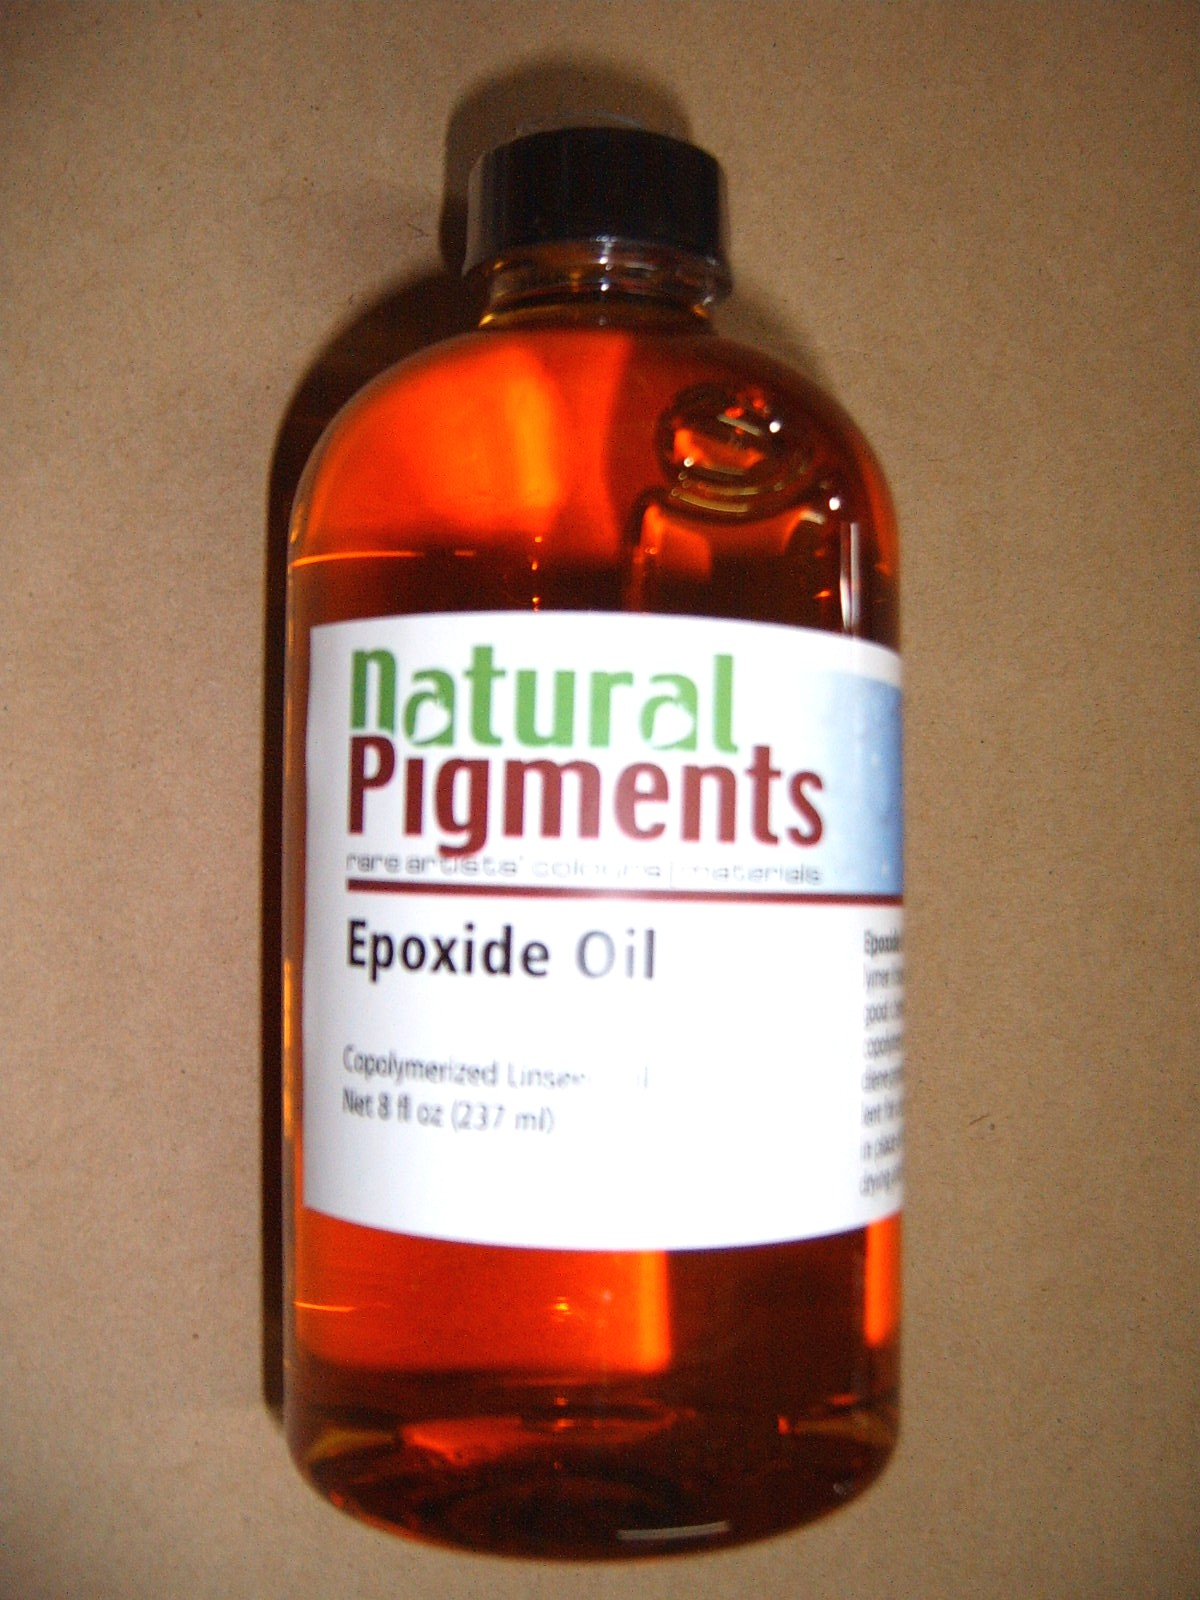 Natural Pigments Epoxide Oil